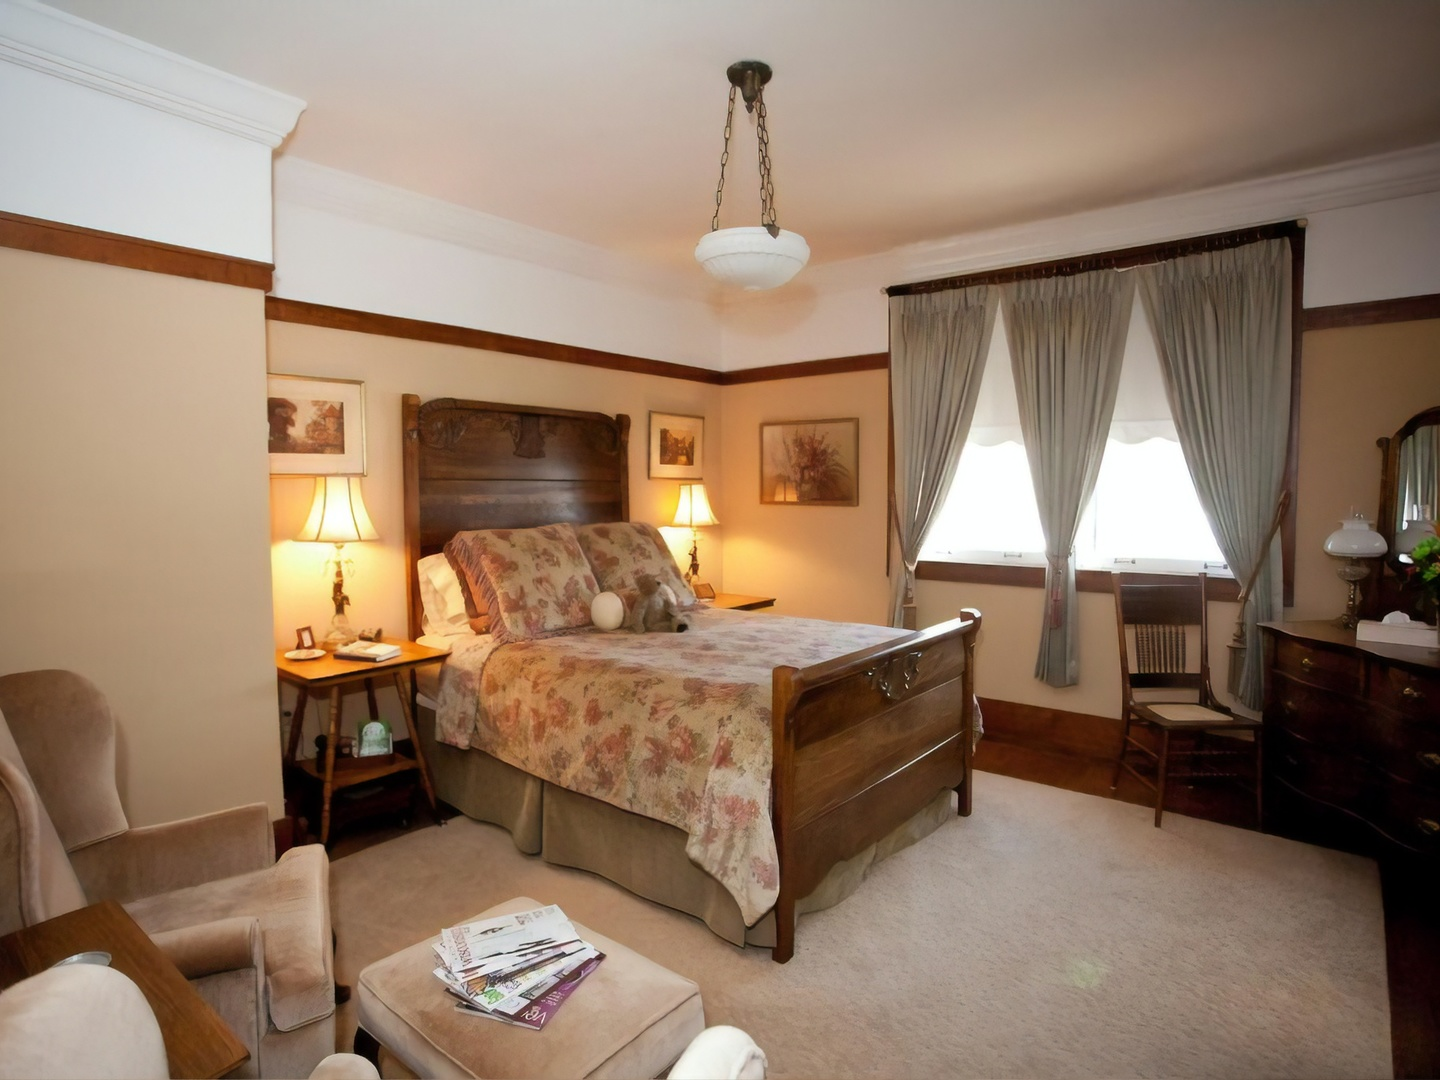 A living room filled with furniture and a bed in a bedroom at Westphal Mansion Inn Bed and Breakfast.